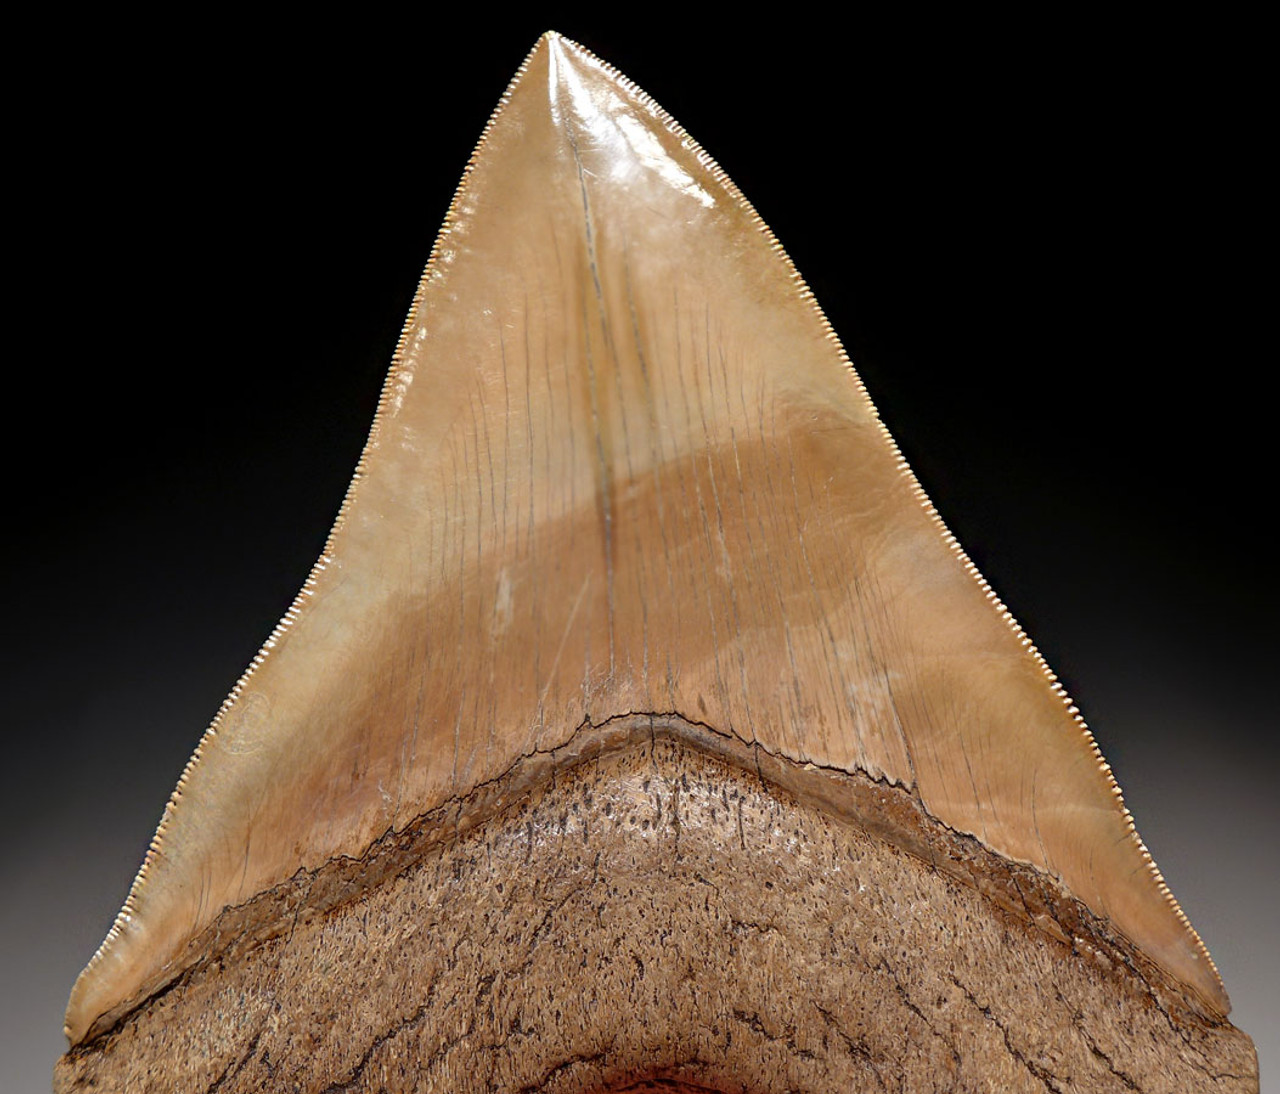 SH6-321 - FINEST GRADE 5.15 INCH MEGALODON TOOTH WITH LIGHT GOLDEN CREAM CHOICE ENAMEL